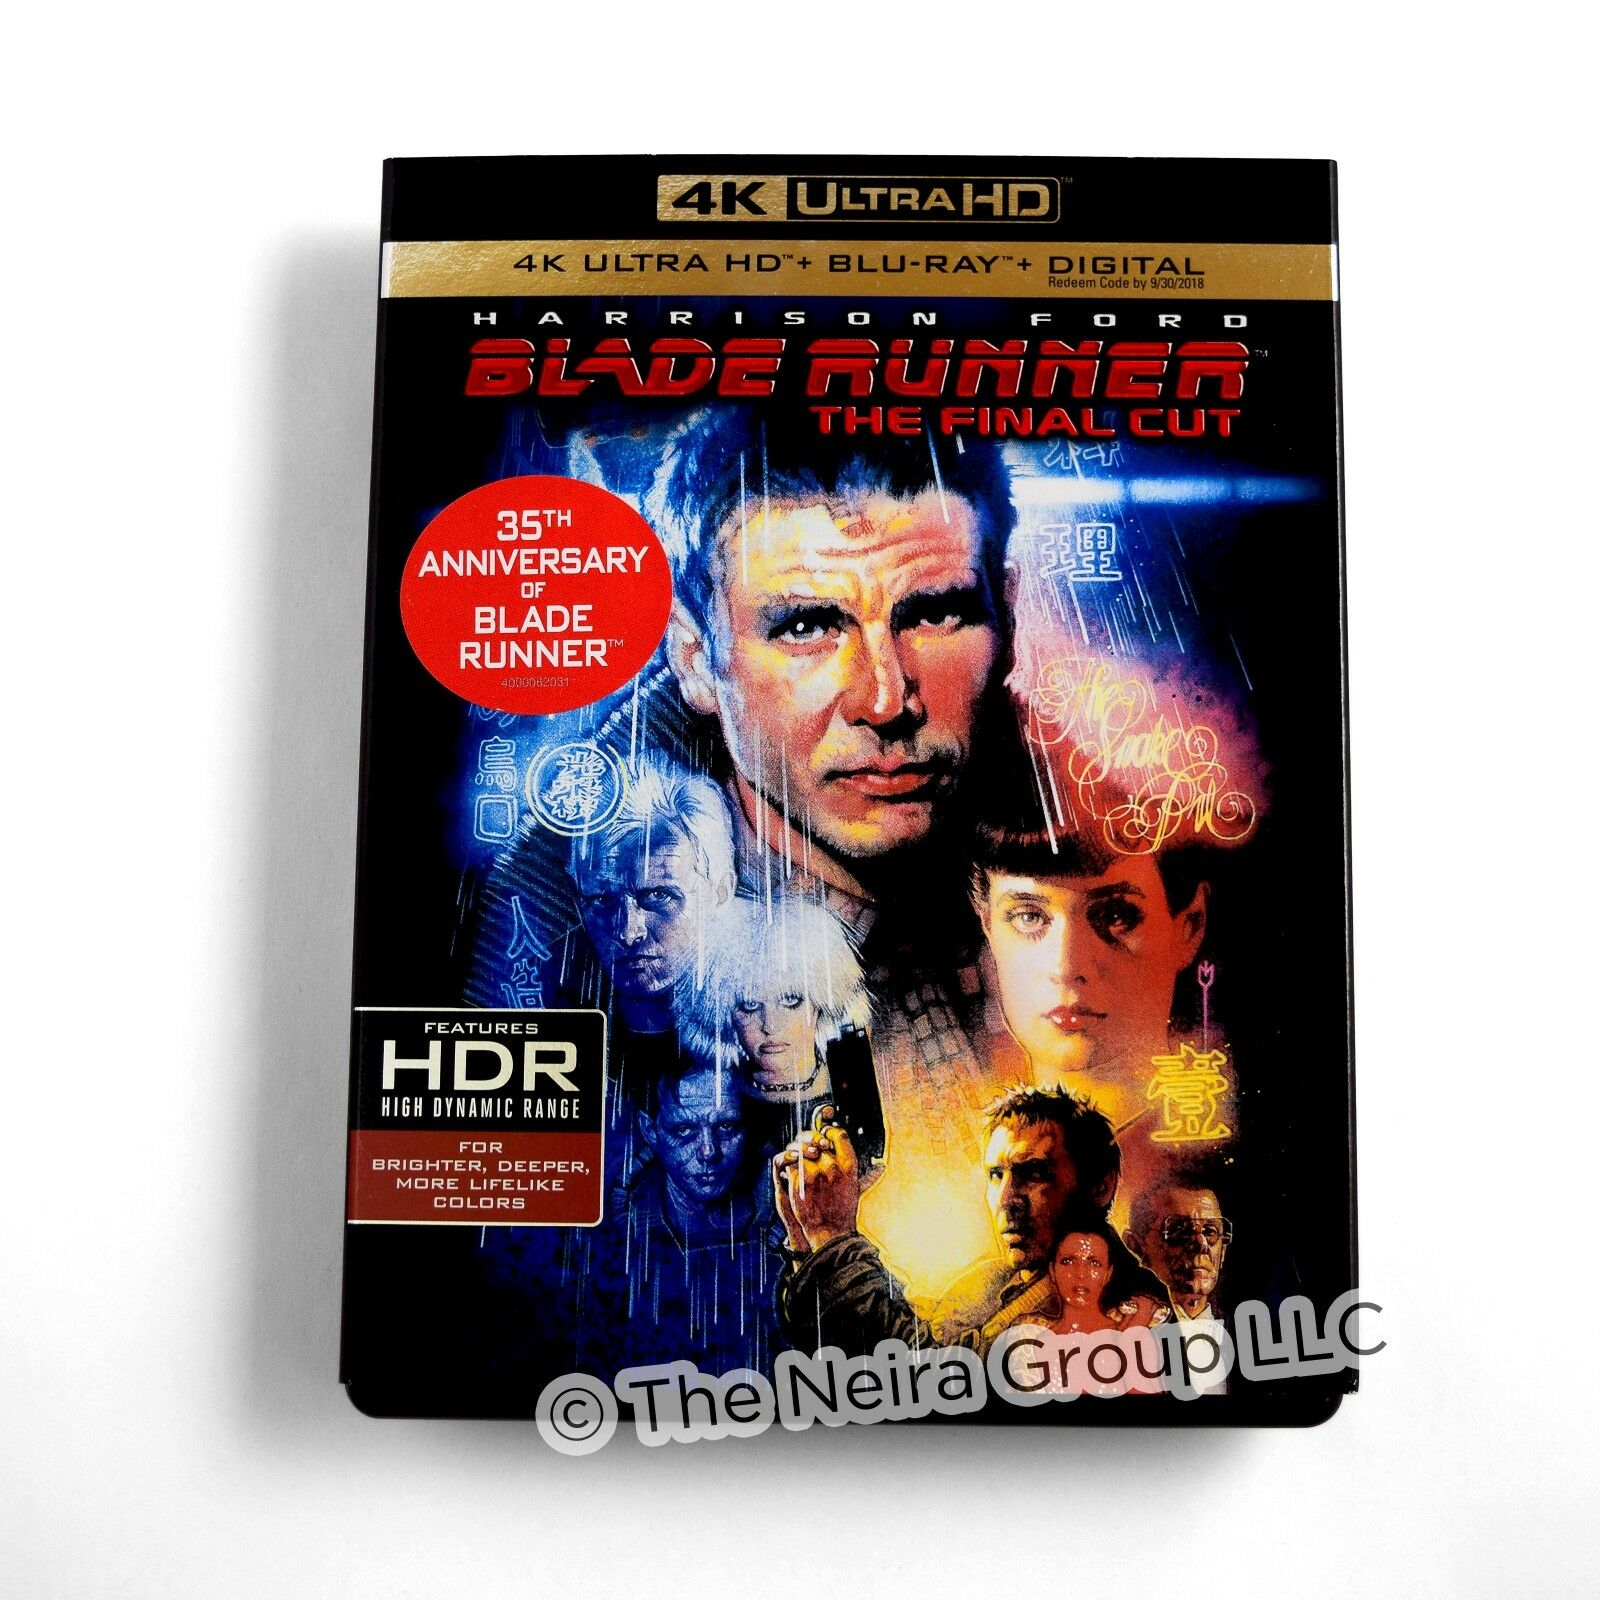 Blade Runner The Final Cut 4K Blu ray Digital HD New Harrison Ford with Slipcase